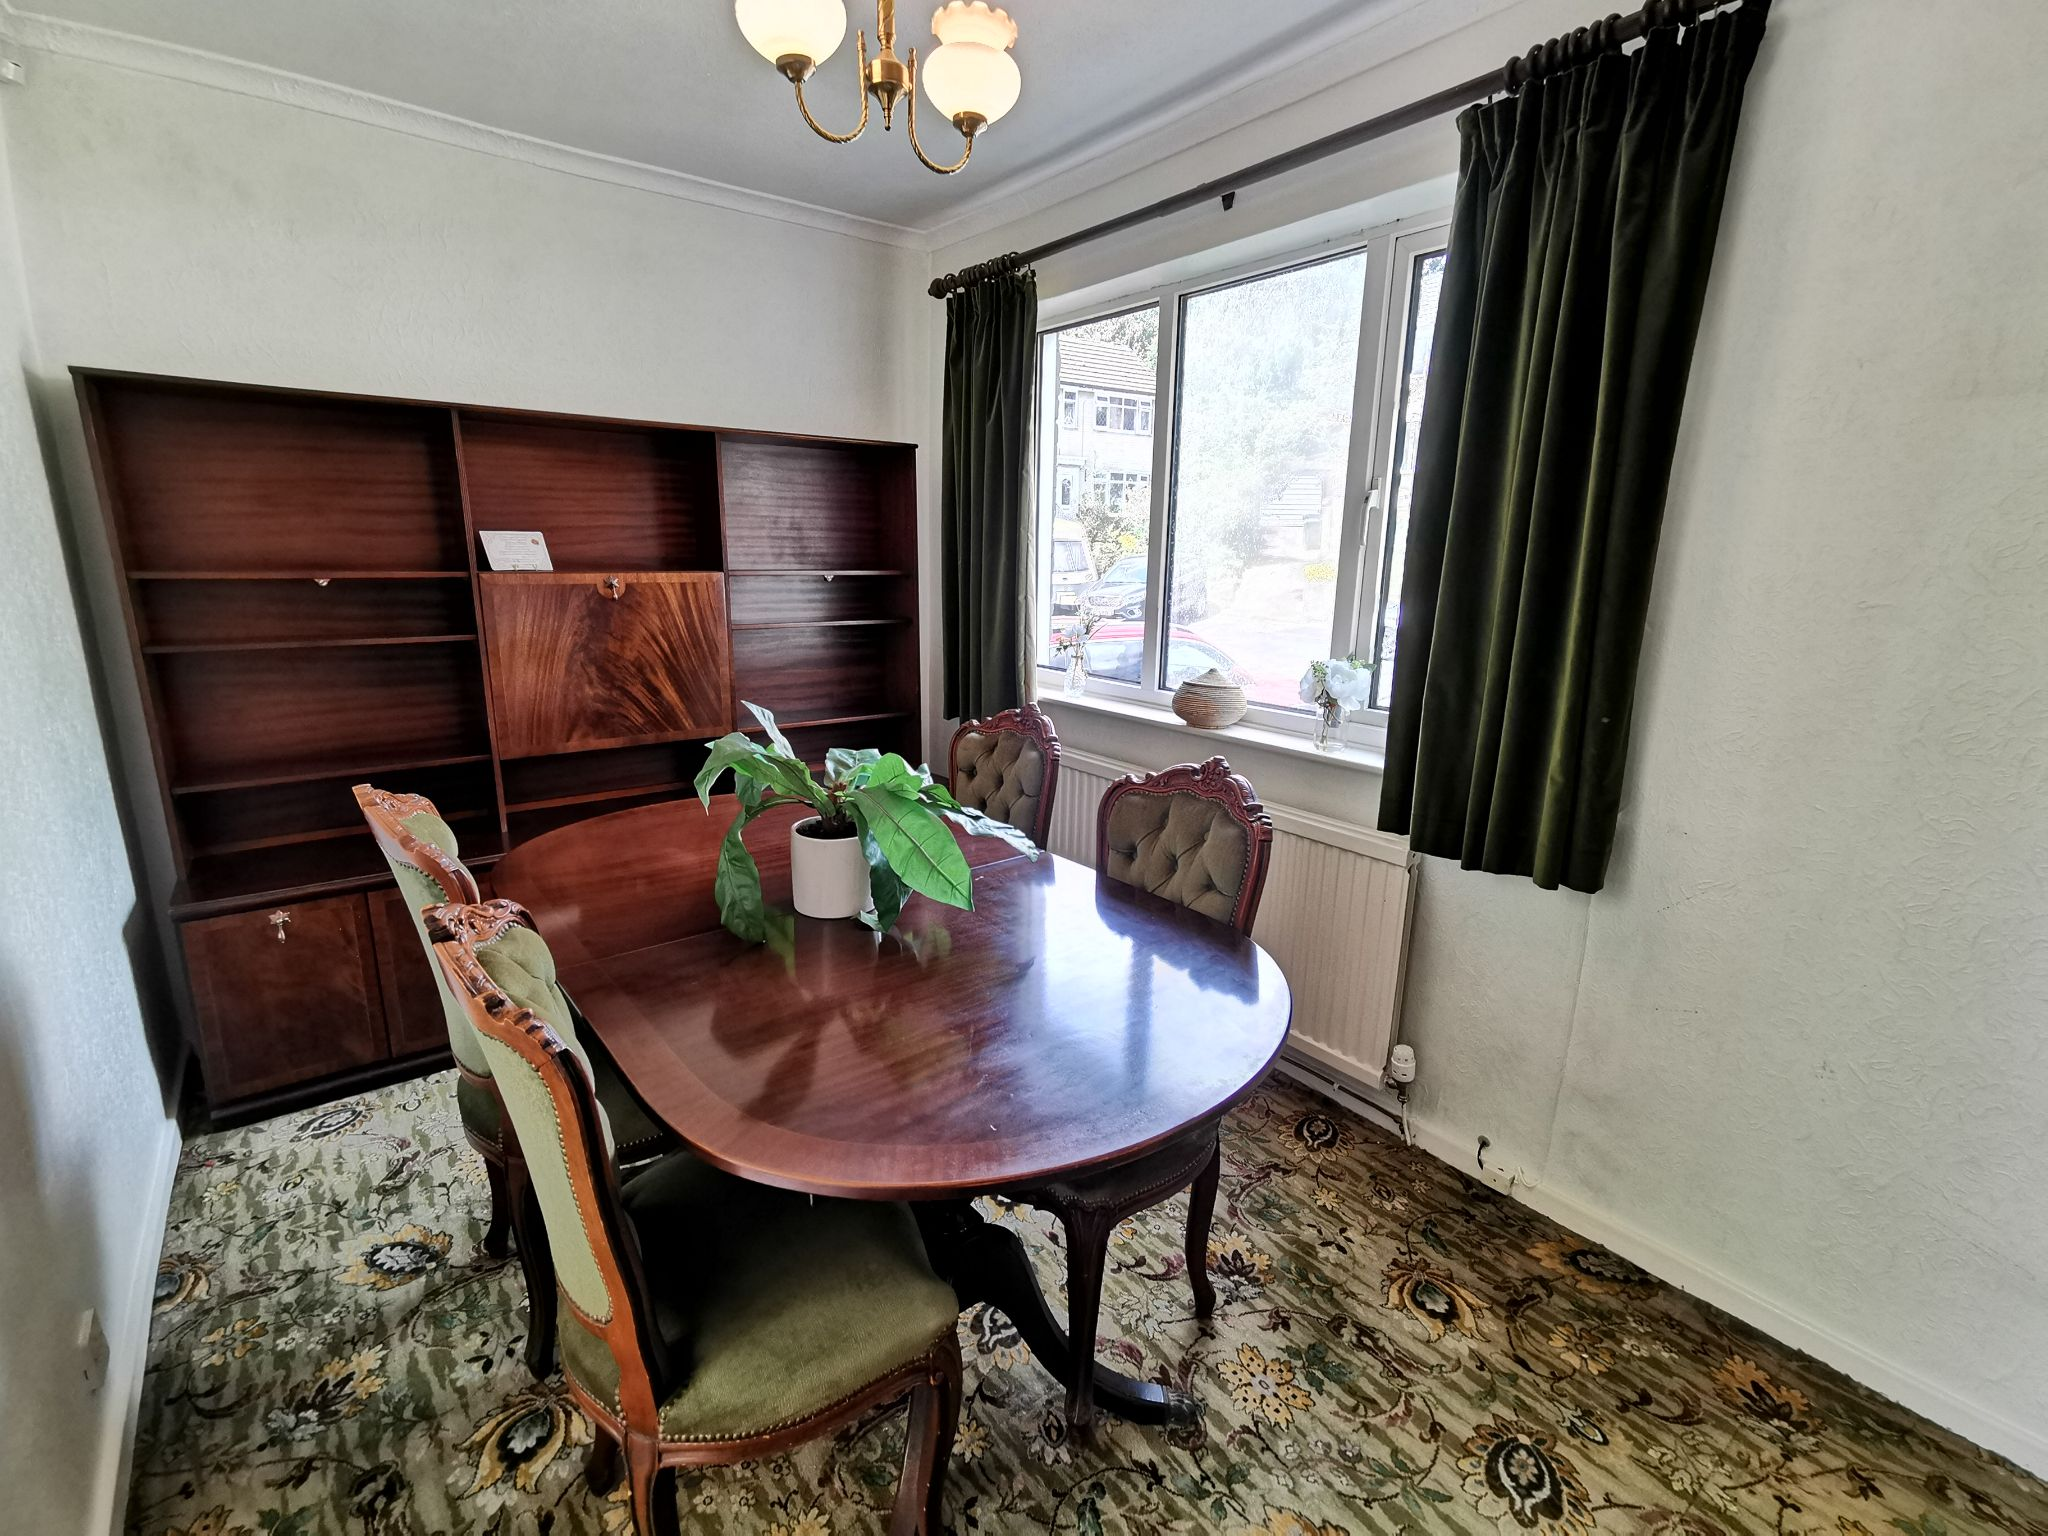 3 bedroom detached house Sold in Bradford - Photograph 3.